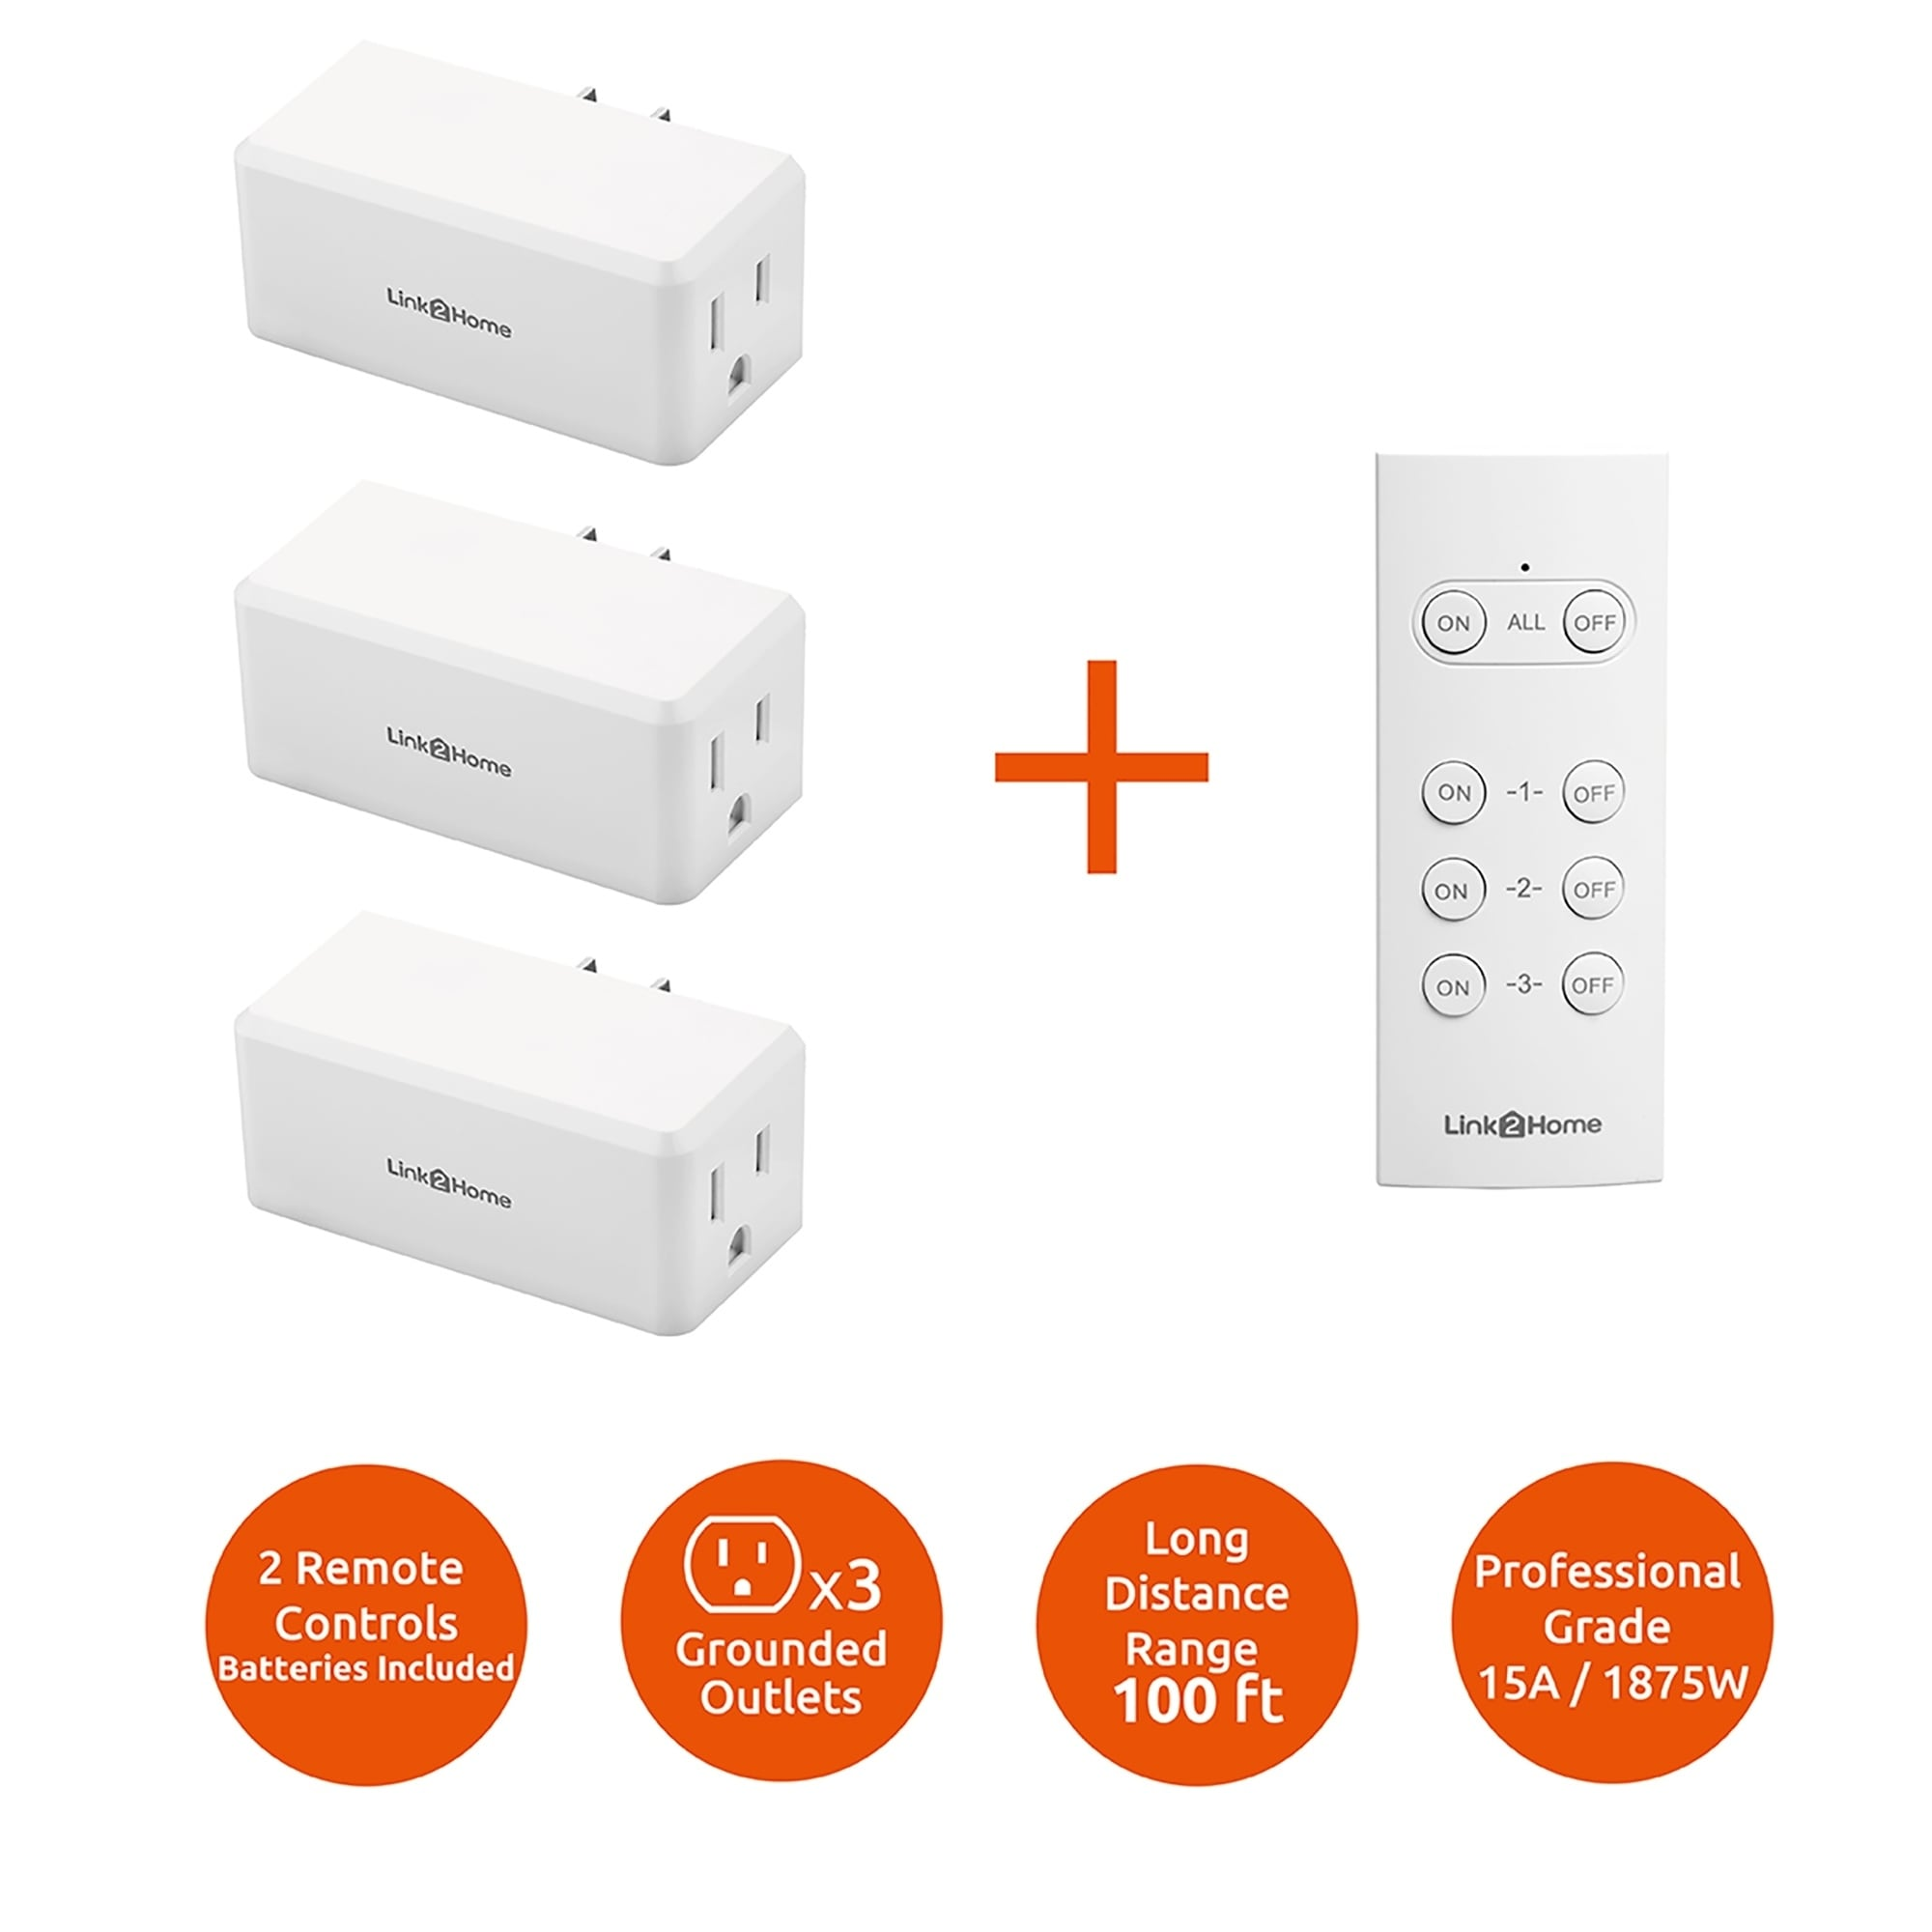 Link2home Wireless Remote Control Outlet Light Switch 100 Ft Range Unlimited Connections Compact Side Plug White 1 Free Shipping On Orders